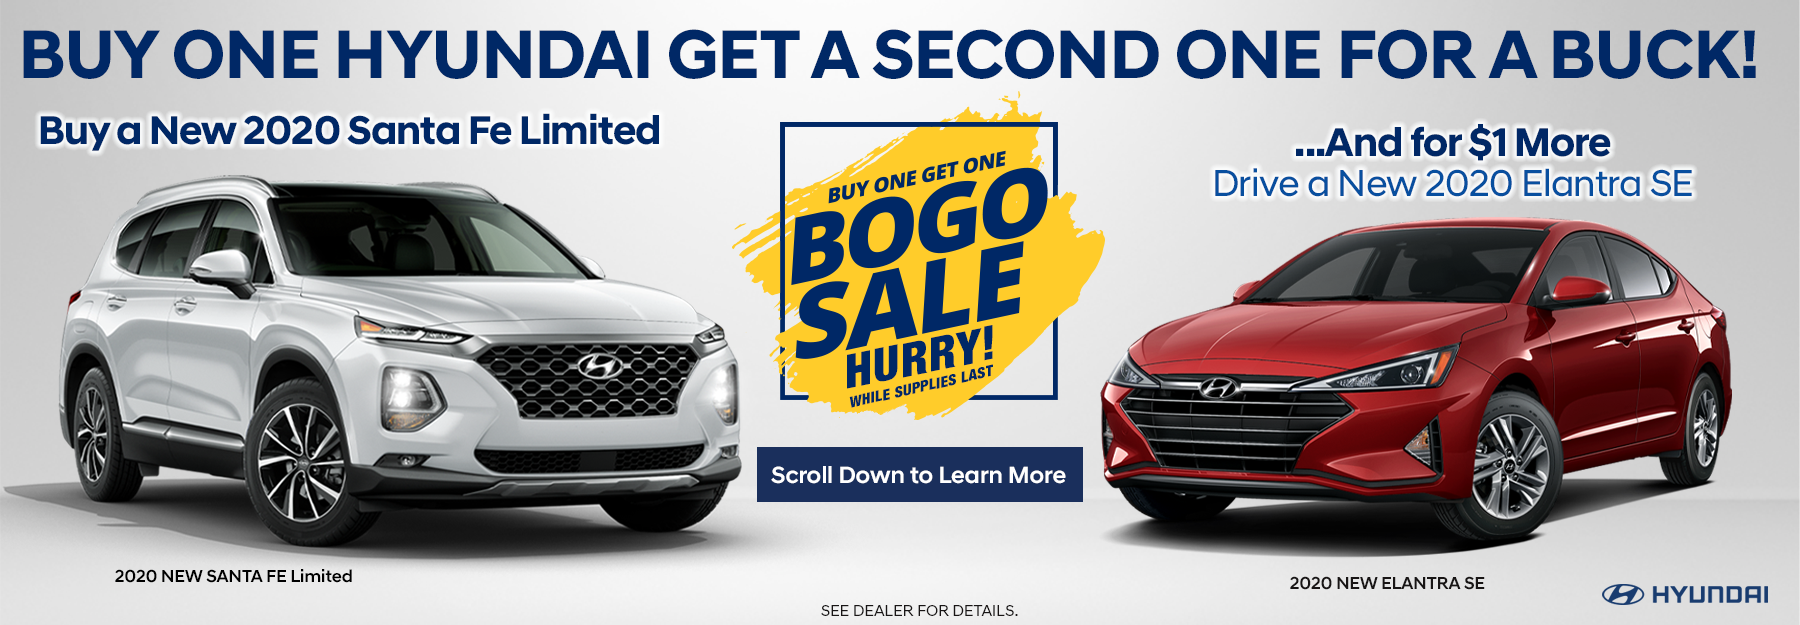 BOGO – Buy a Santa Fe Limited and Drive an Elantra SE for a $1